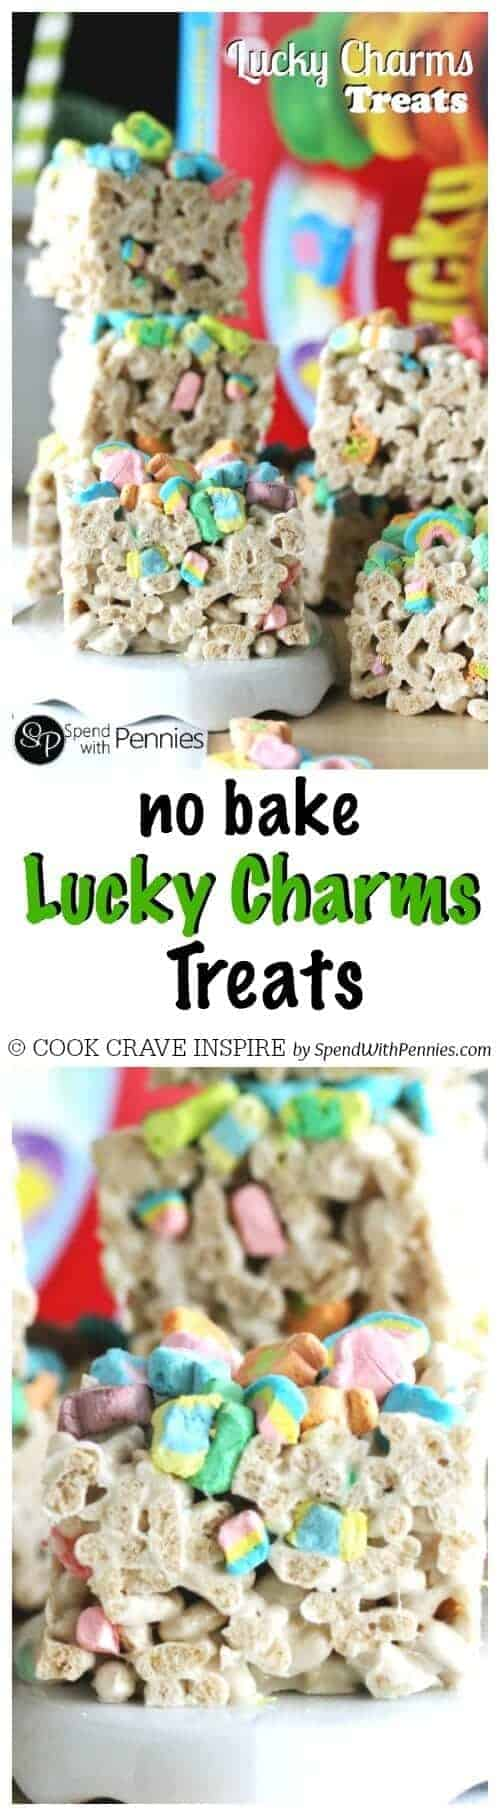 Lucky Charms Treats are the perfect no bake after school or lunch box snack. These take just a few minutes to make and of course the kids love 'em!